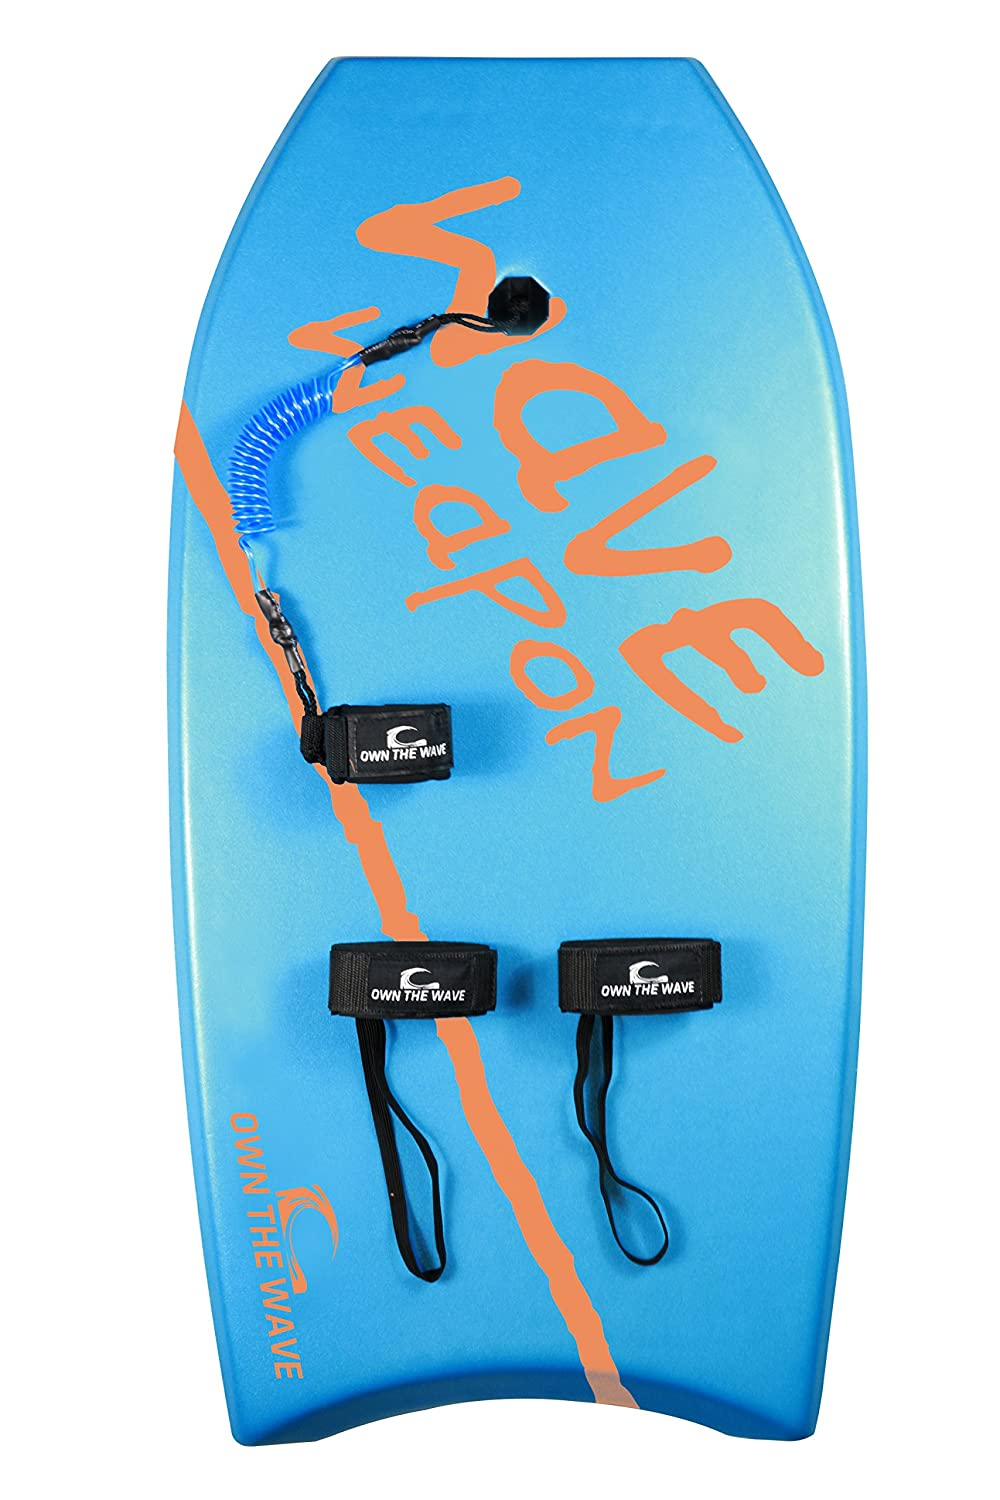 Own the Wave Beach Attack Pack – Wave Weapon Super Lightweight Body-Board